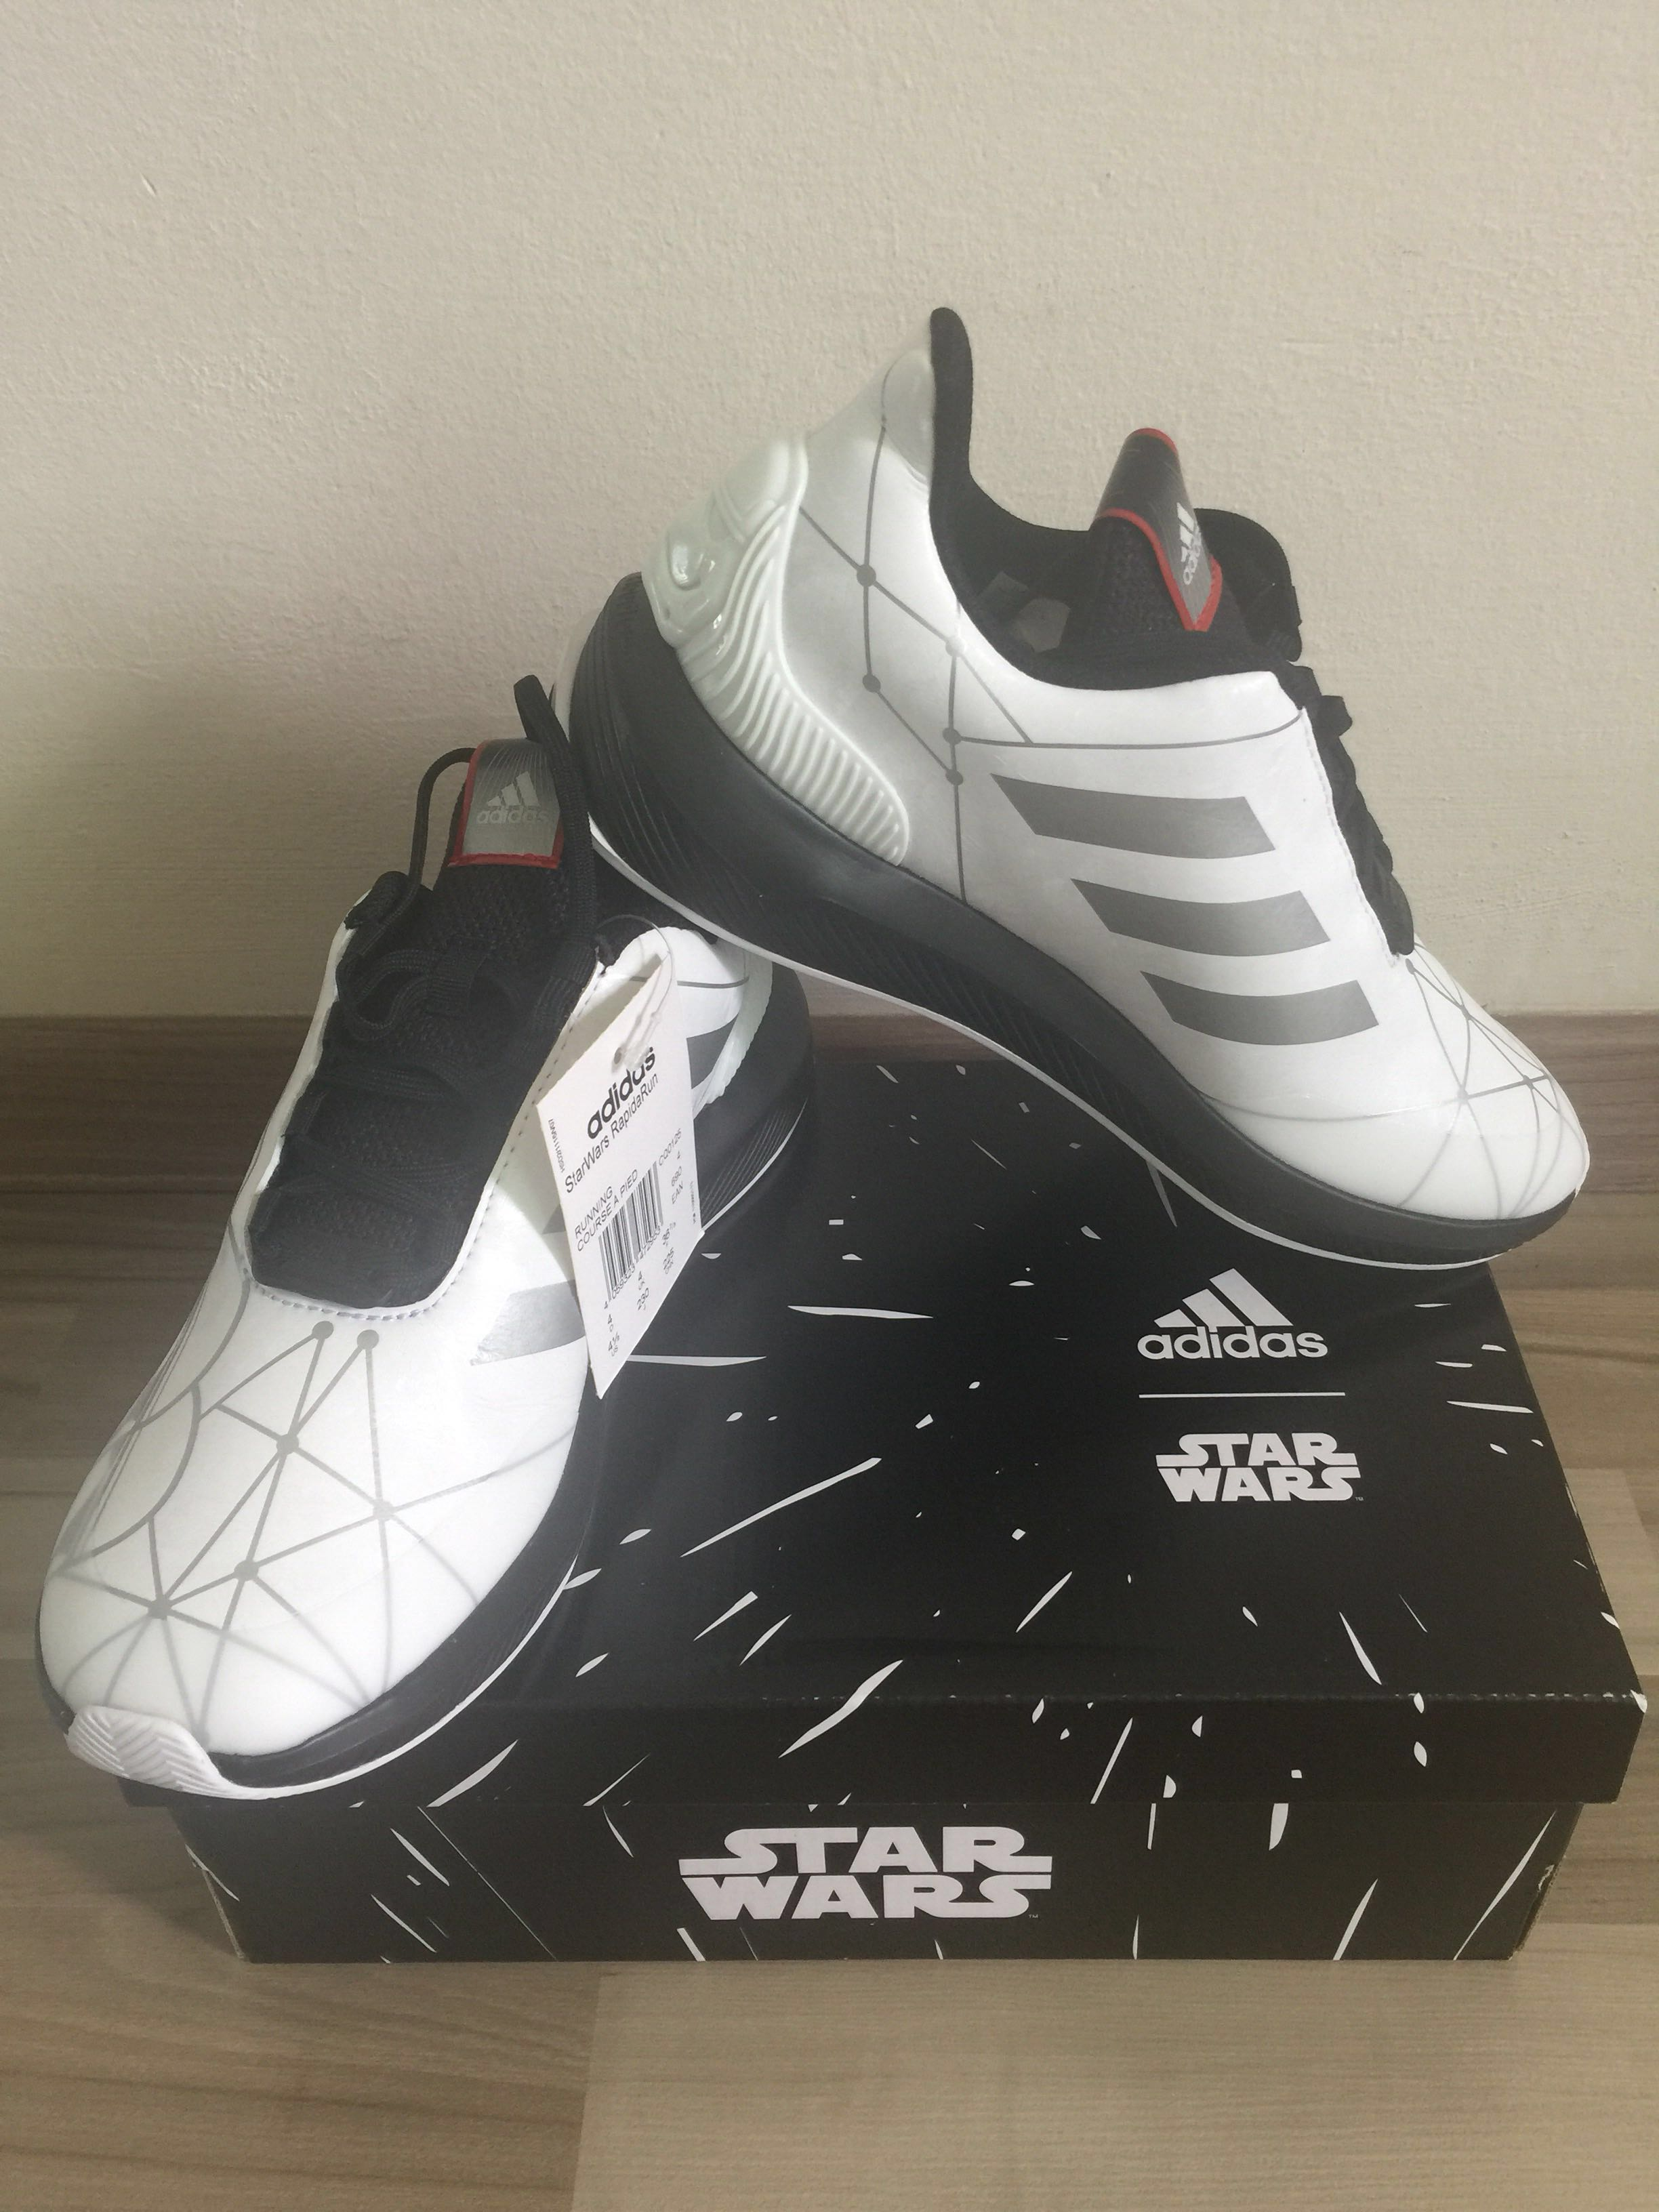 98a00913ce29 Adidas Star Wars Shoes in white